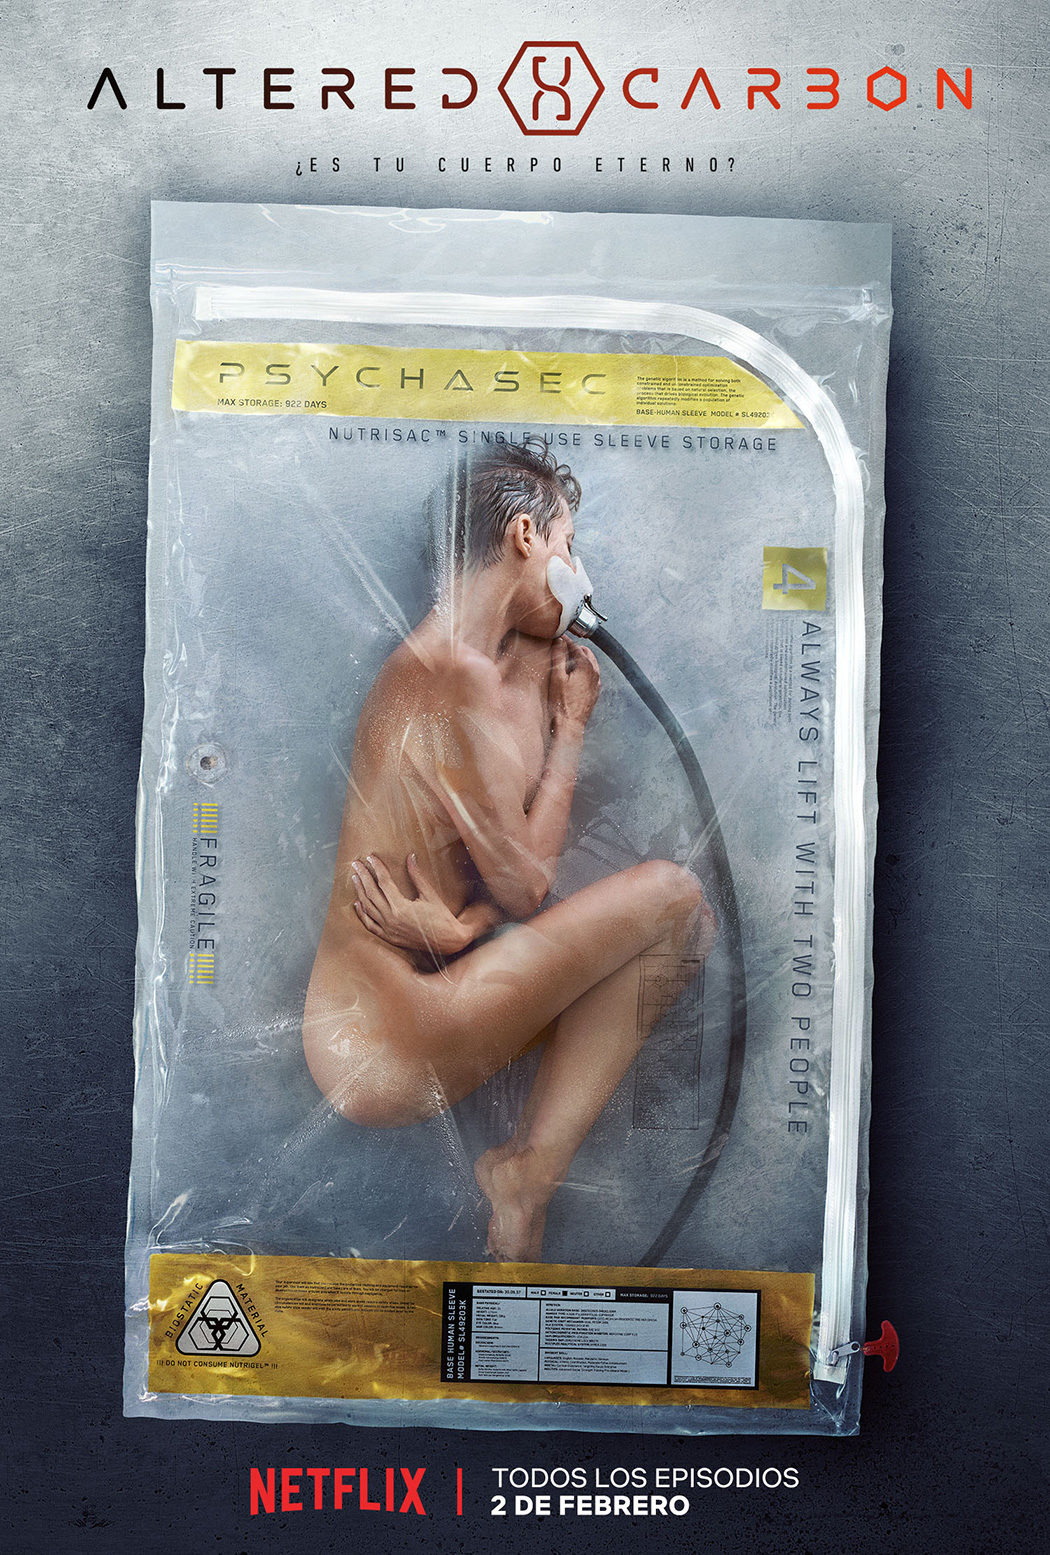 Póster #3 de Altered Carbon